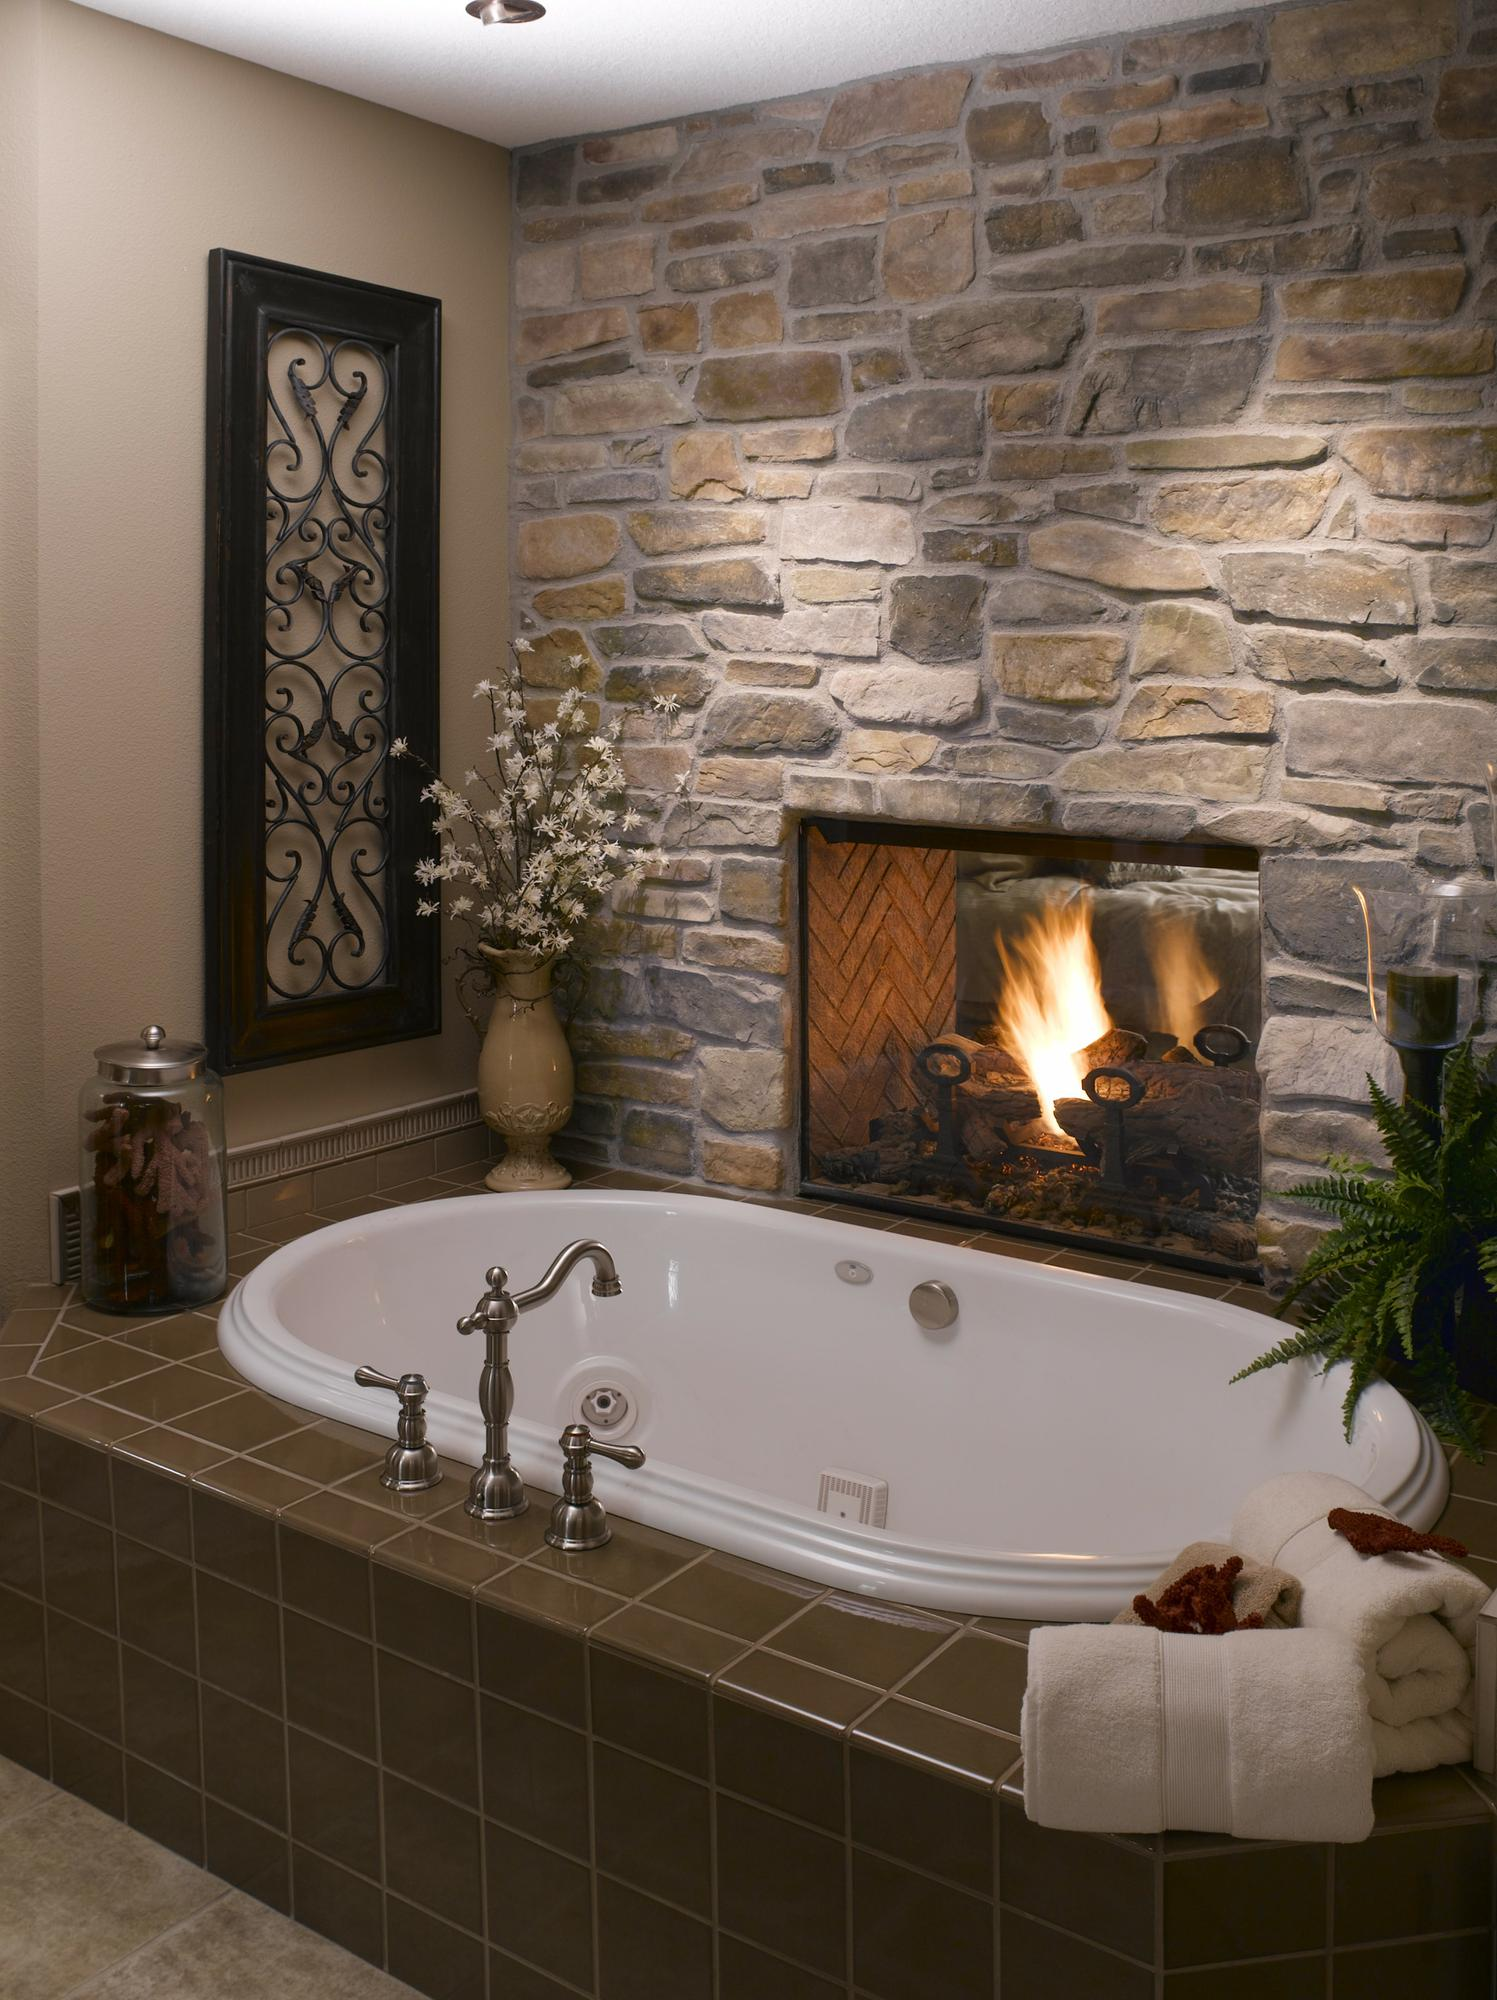 Fireplace between the master bedroom and tub. Yes please!  On vacay I got to tak